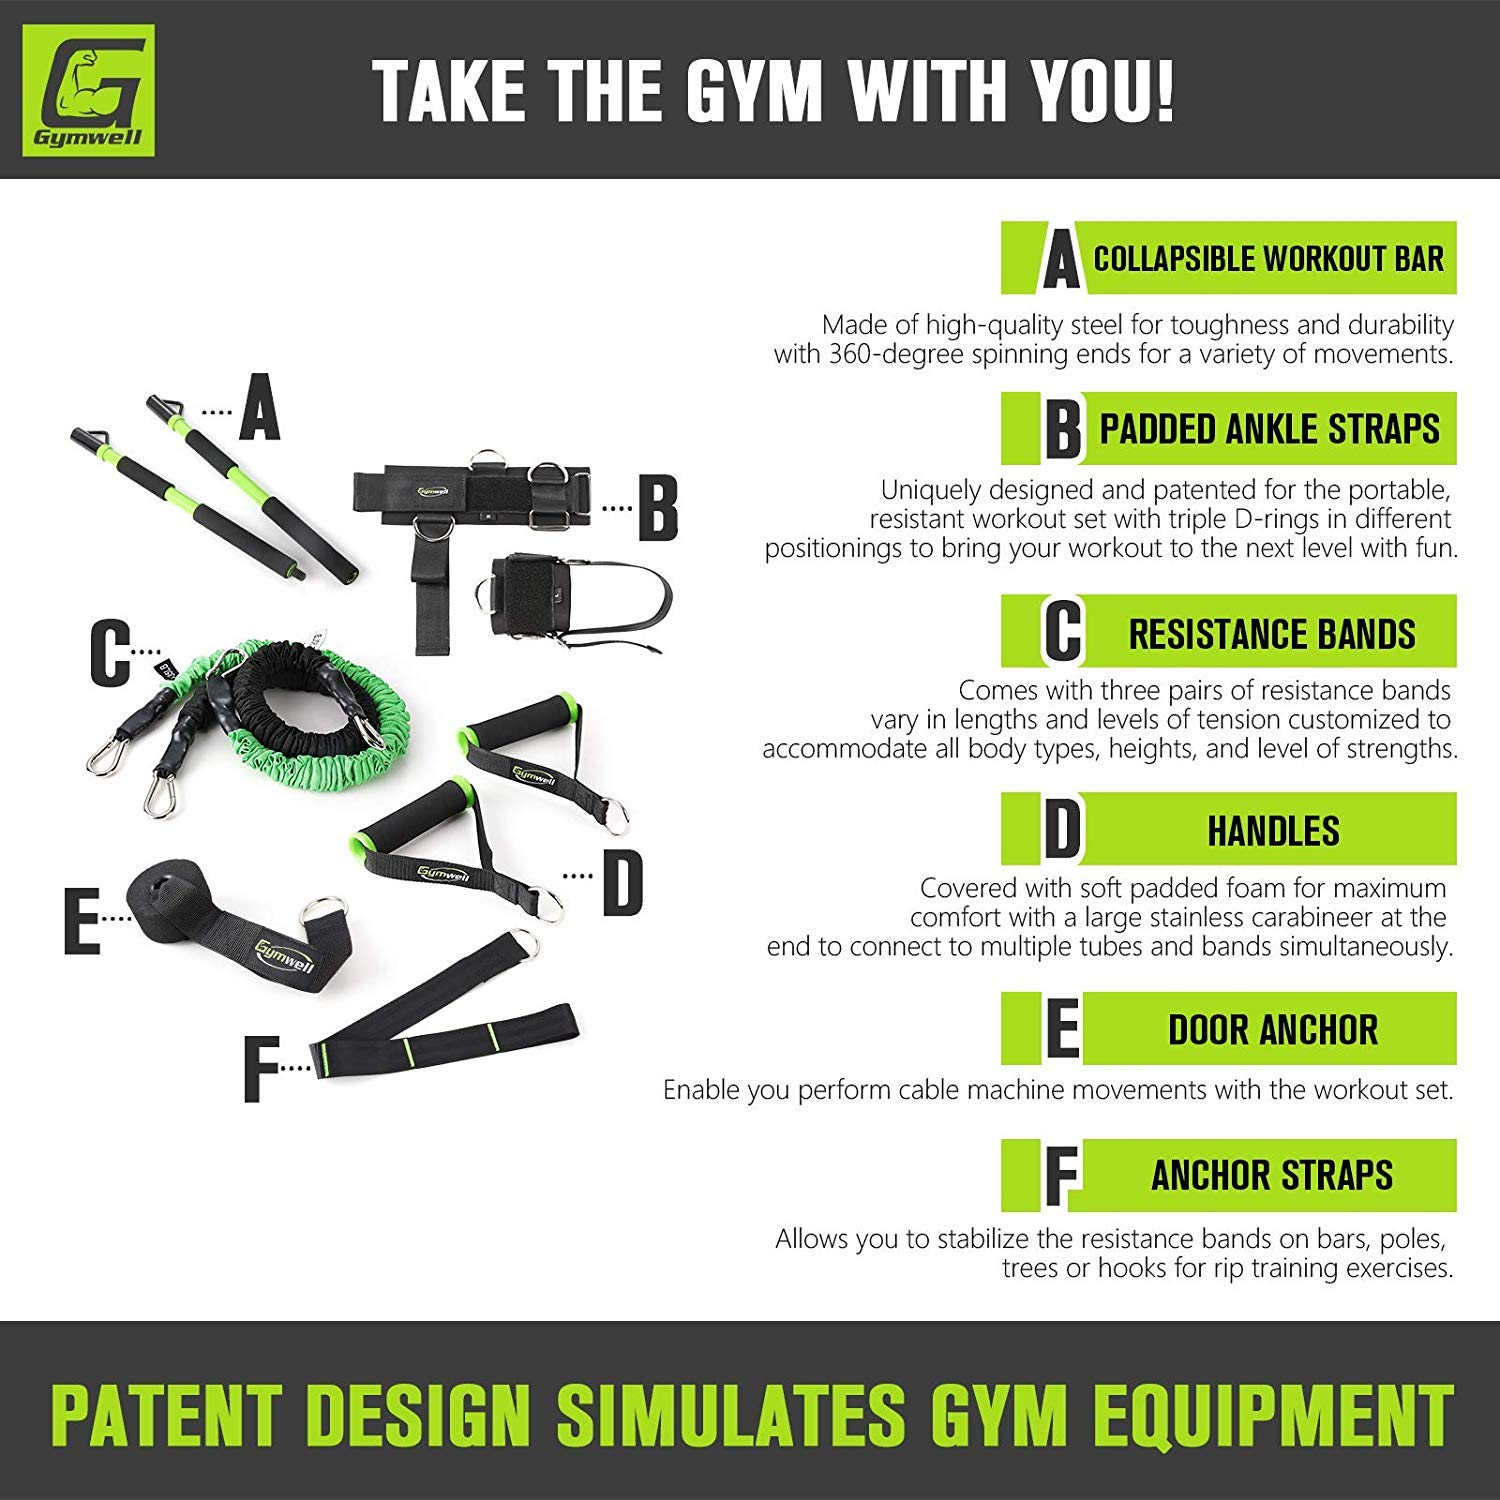 Gymwell Portable Resistance Workout Set, Total Body Workout Equipment for Home, Office or Outdoor with 3 Sets of Resistance Bands (Green - Full Gym) by Gymwell (Image #2)